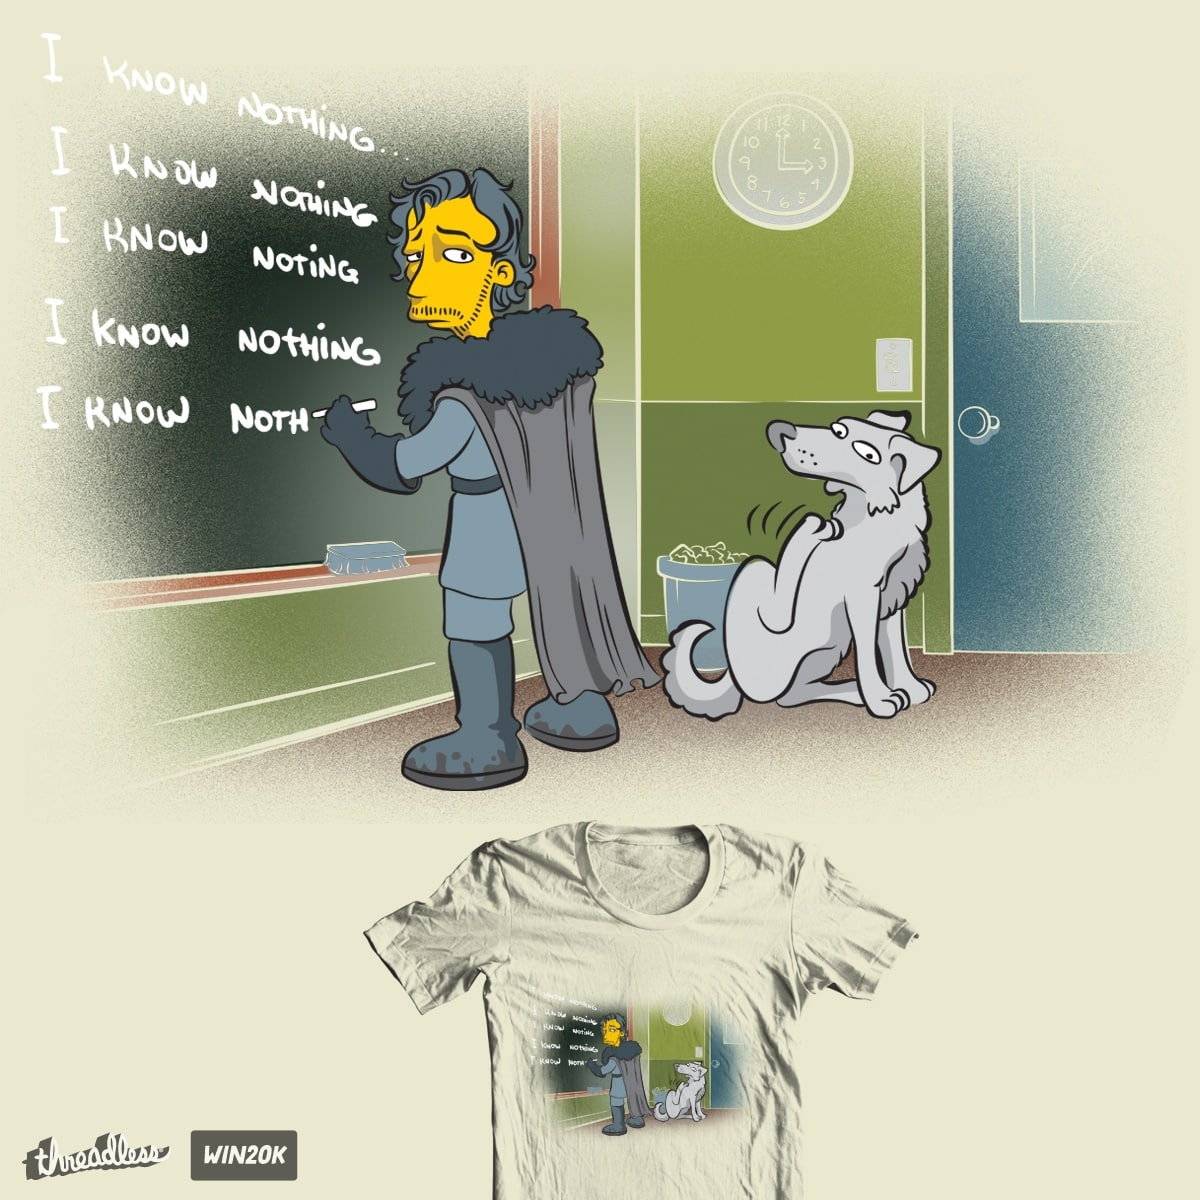 I Know Nothing by GUTO_SZA and tobiasfonseca on Threadless